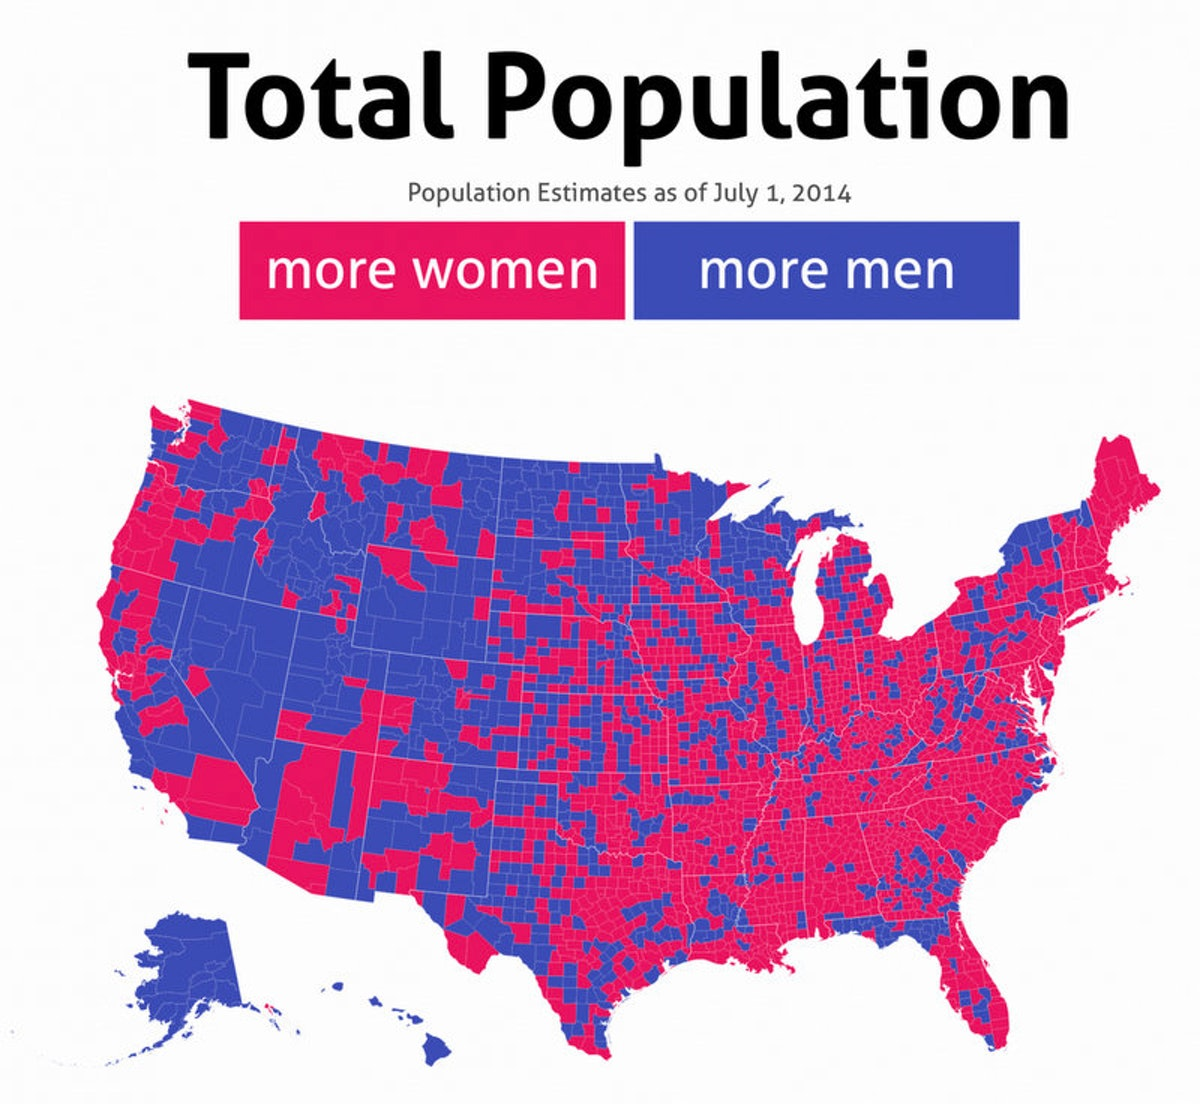 an analysis of women make up more than of the us population The role of women in the united states has changed dramatically over the past few decades while 2012 was a watershed year for women in terms of getting elected to public office, women still comprise only 181 percent of congress, despite making up more than half of the us population.